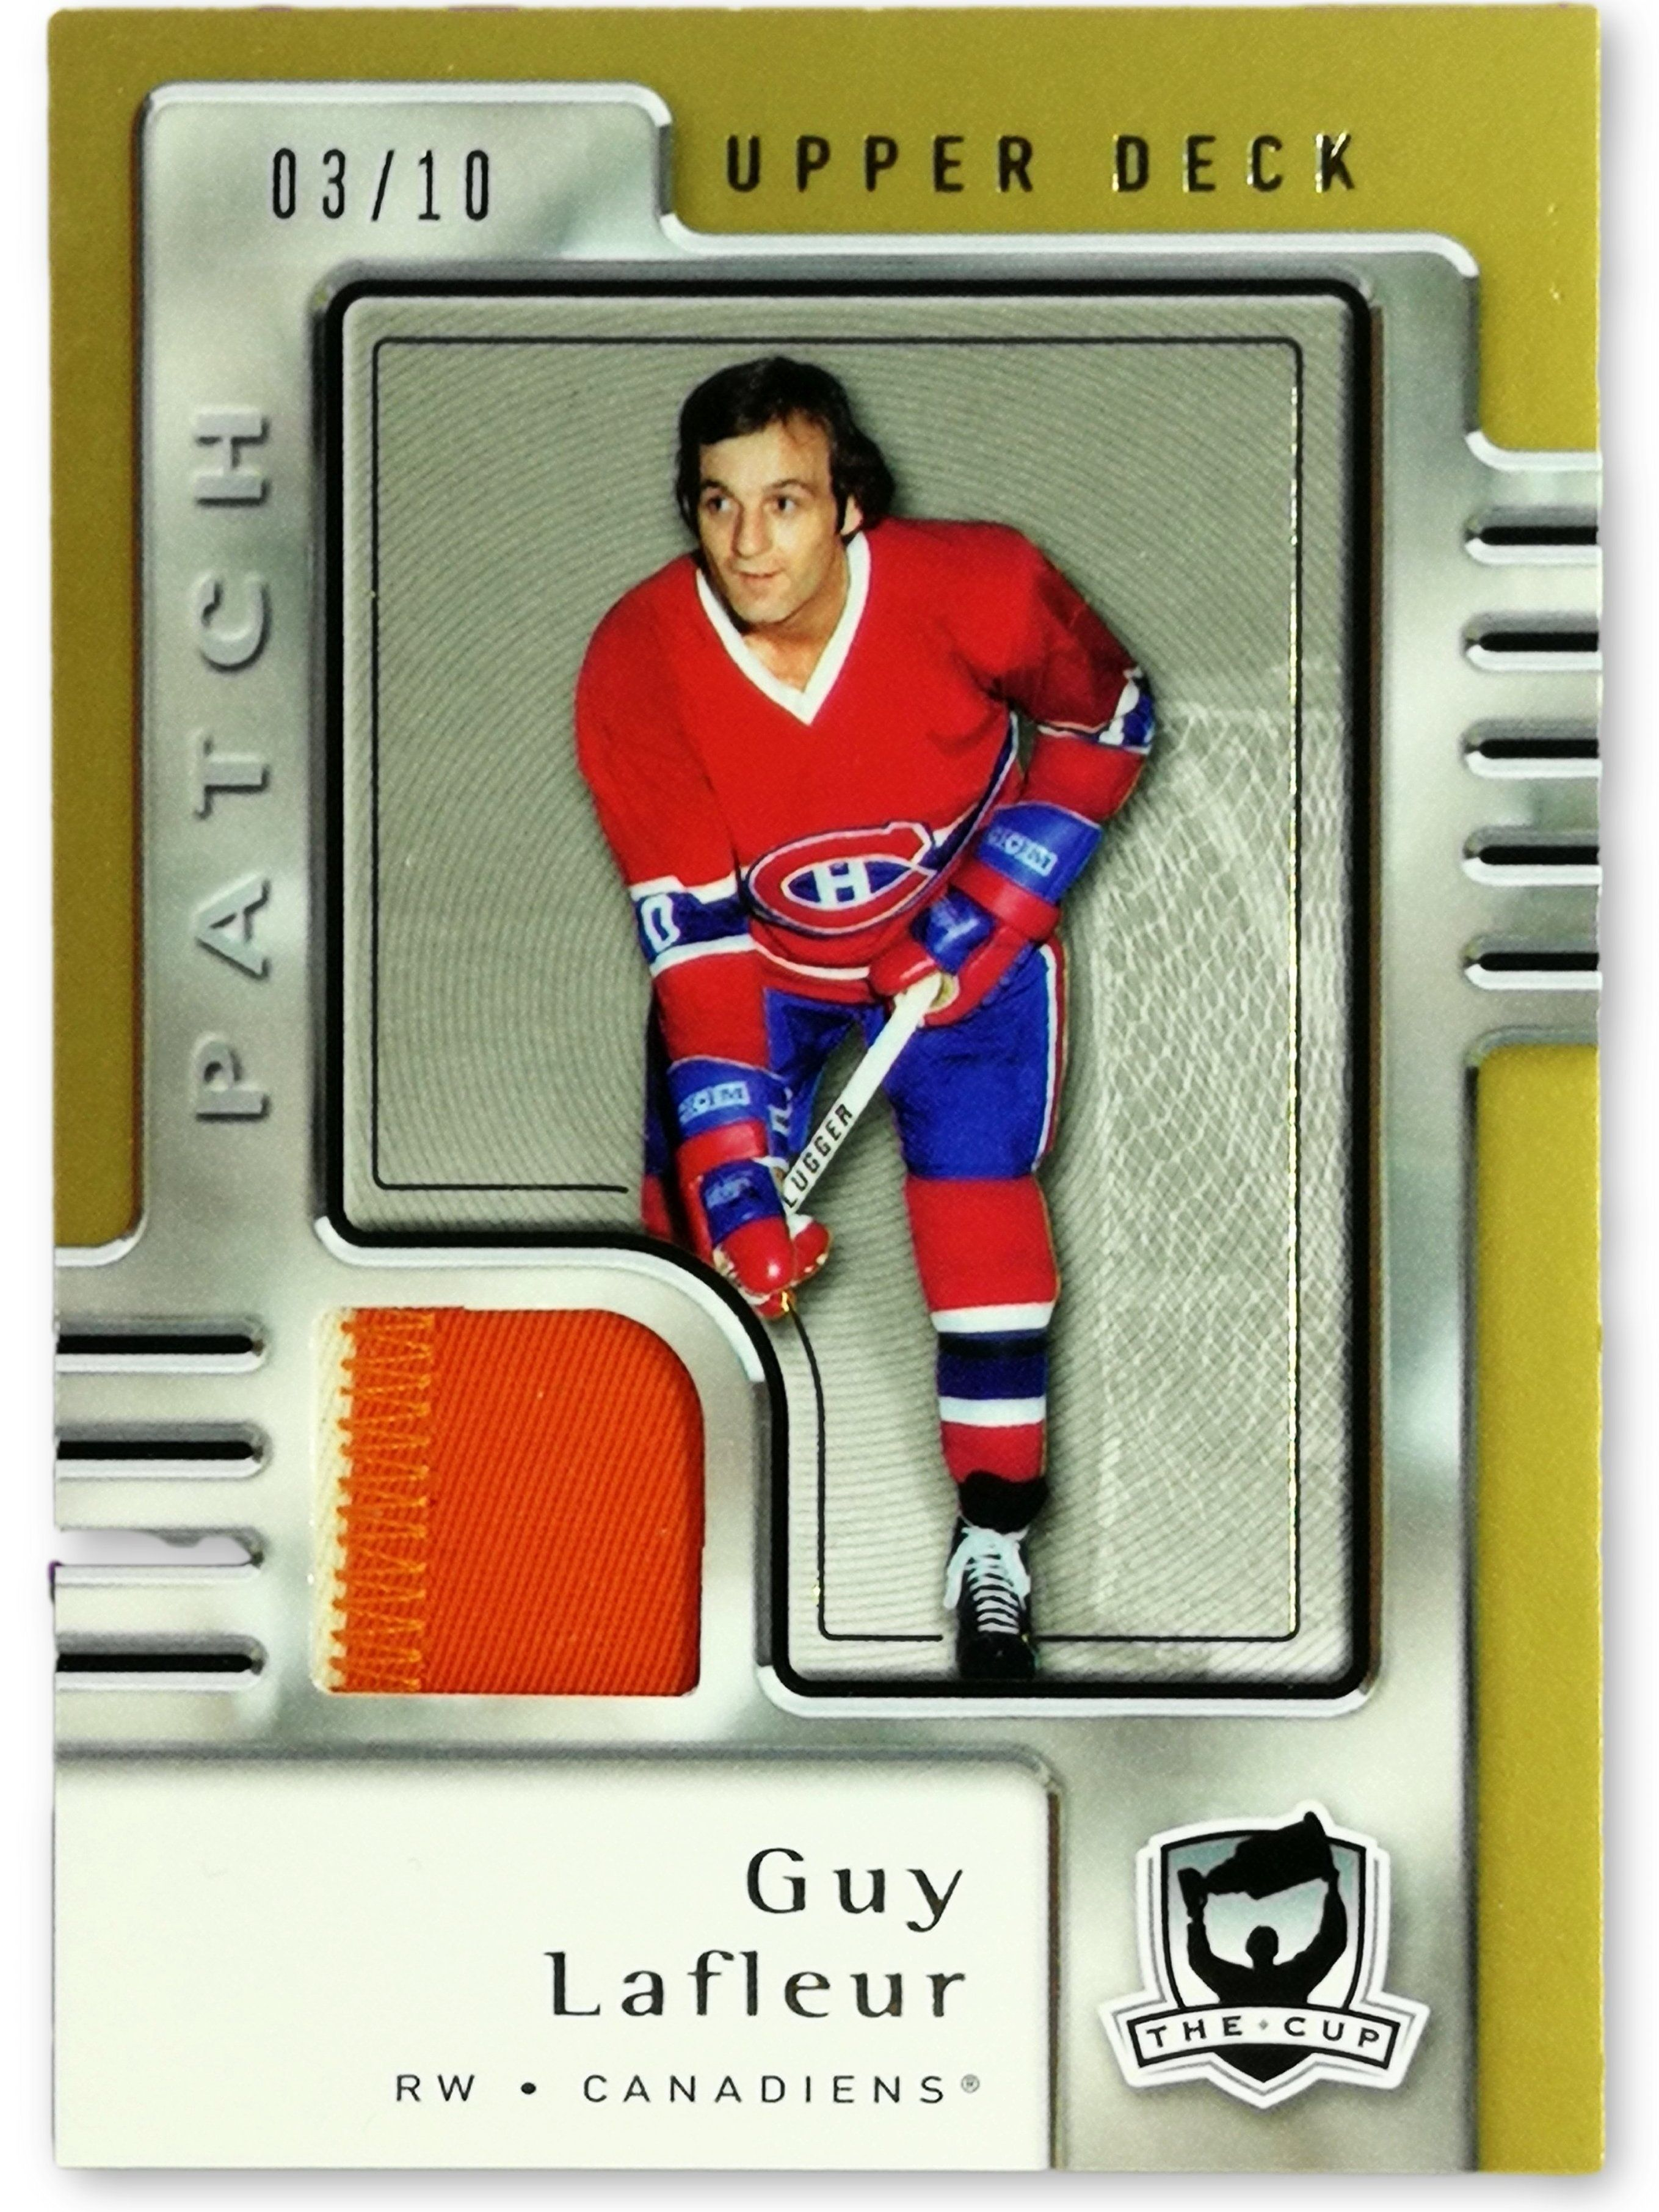 Guy Lafleur 03/10 2006-07 The Cup Gold Patches #46